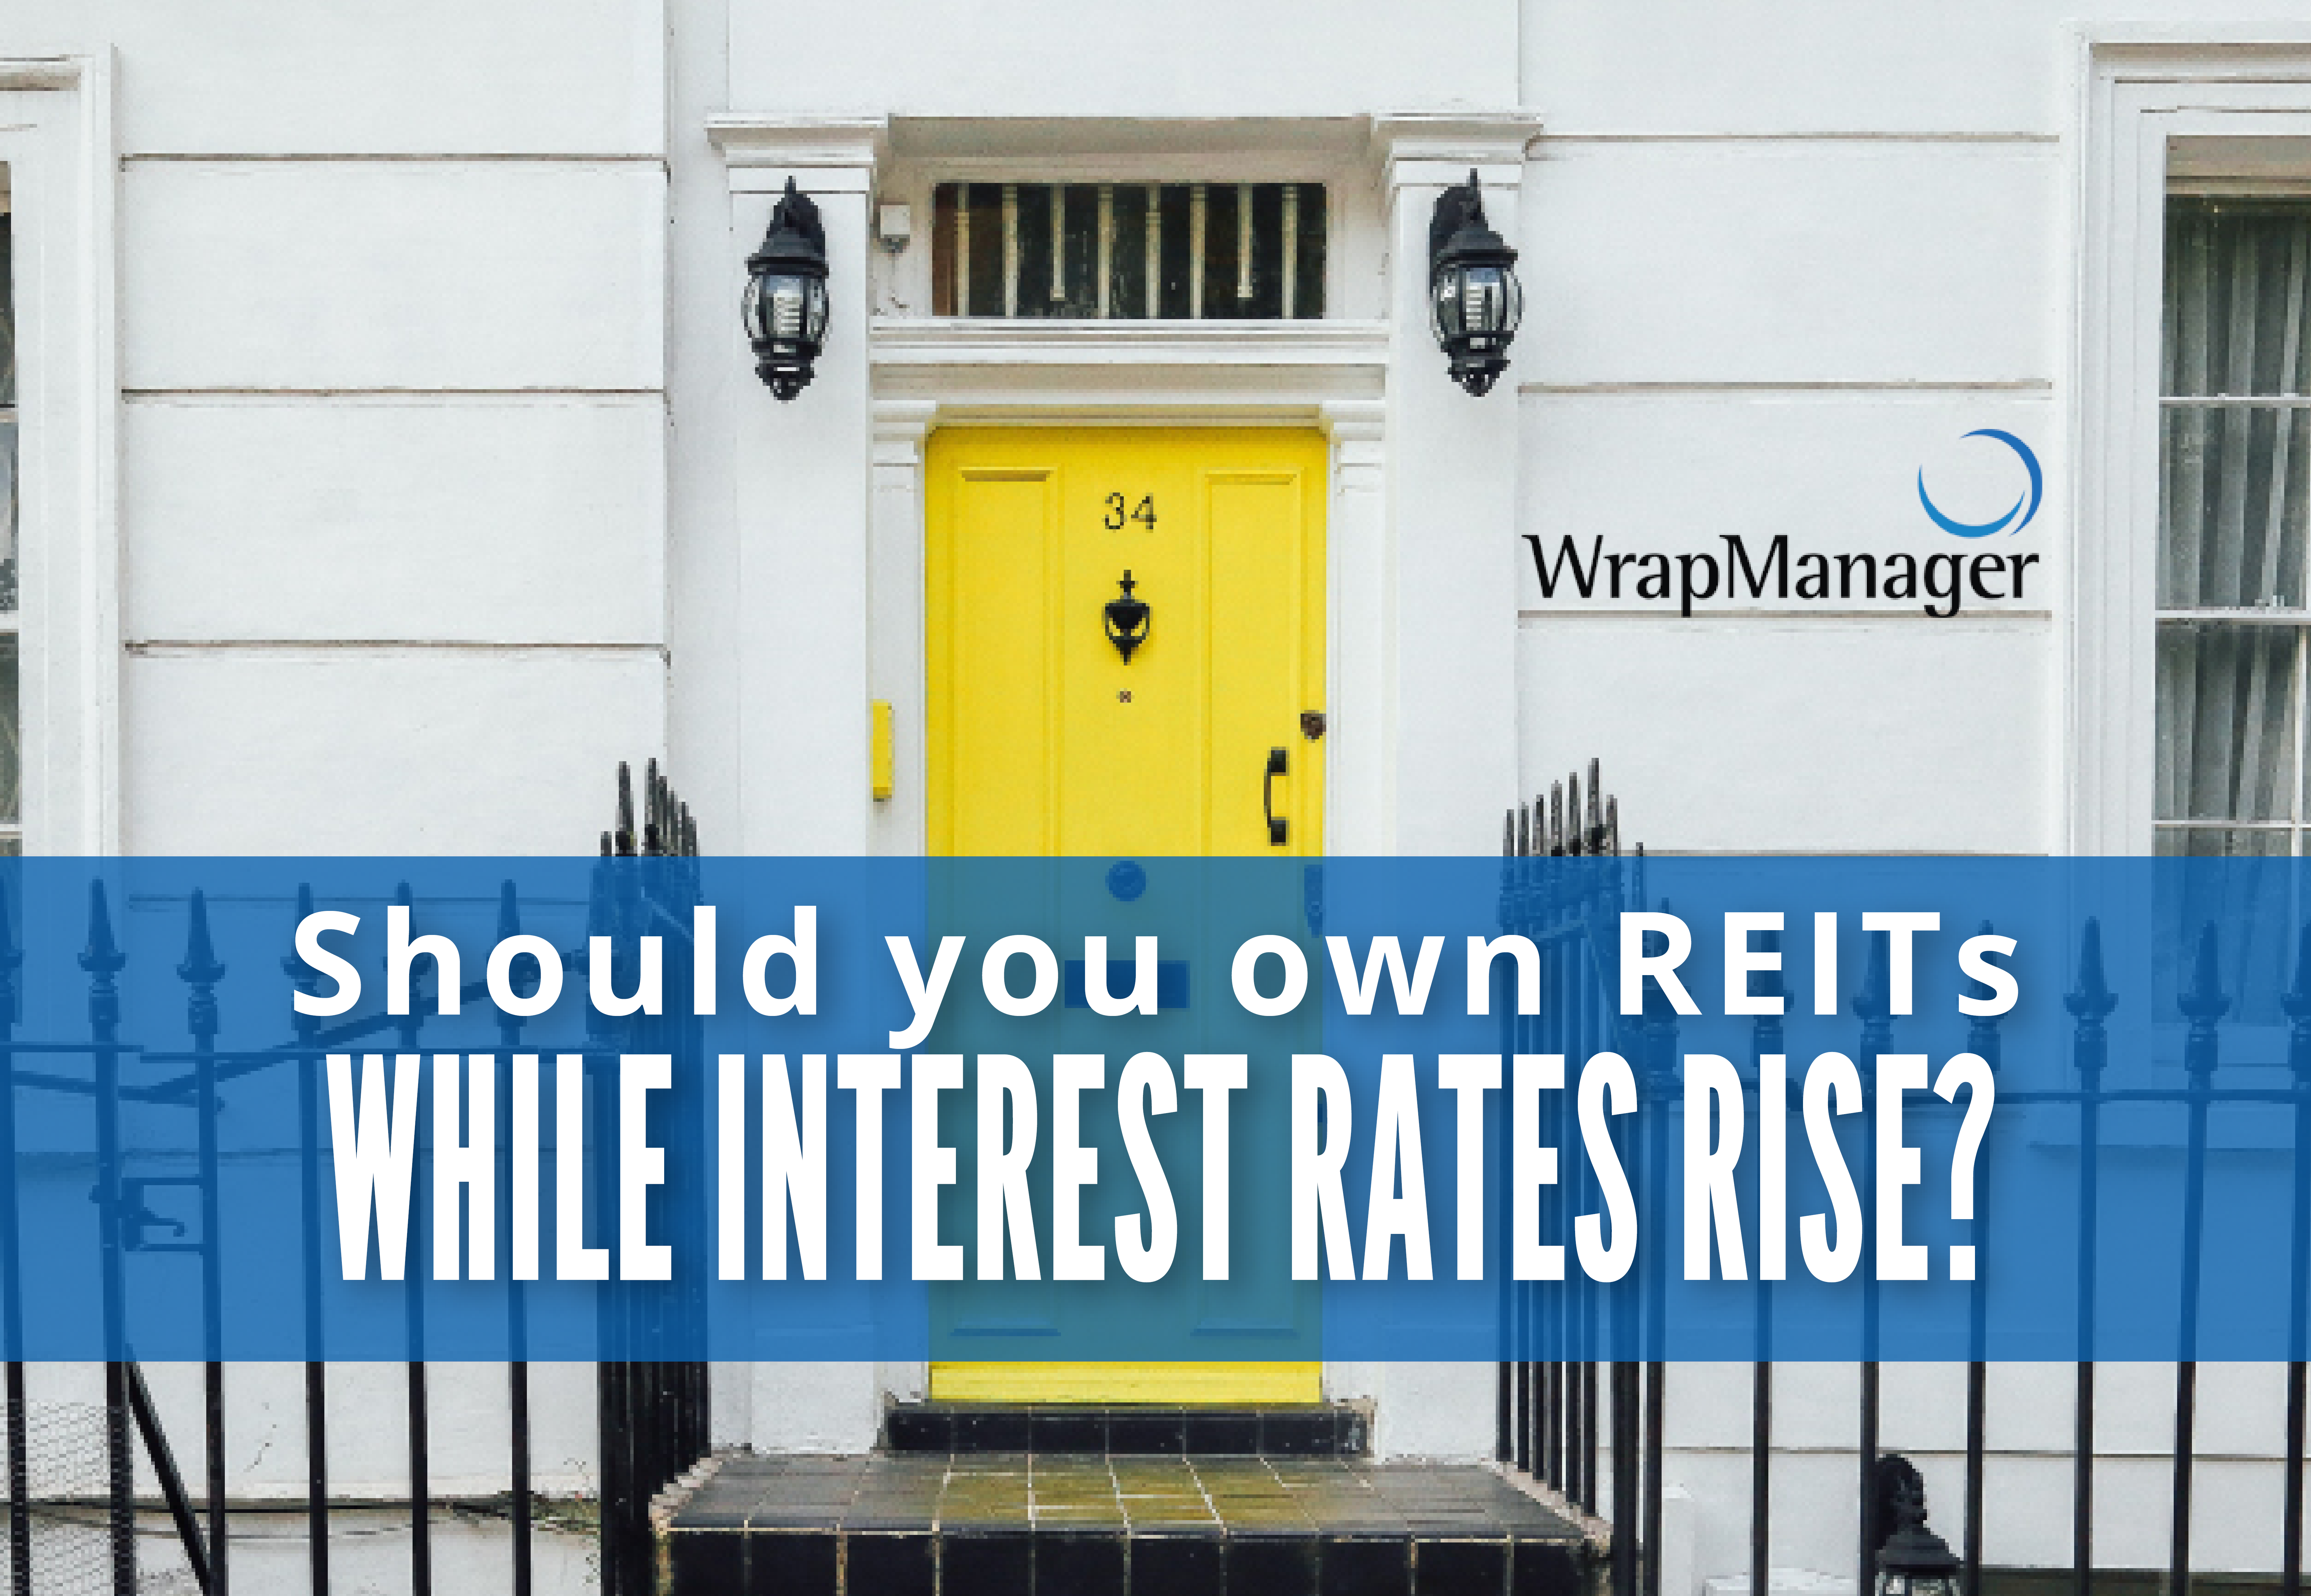 Should You Still Own REITs in a Rising Interest Rate Environment?